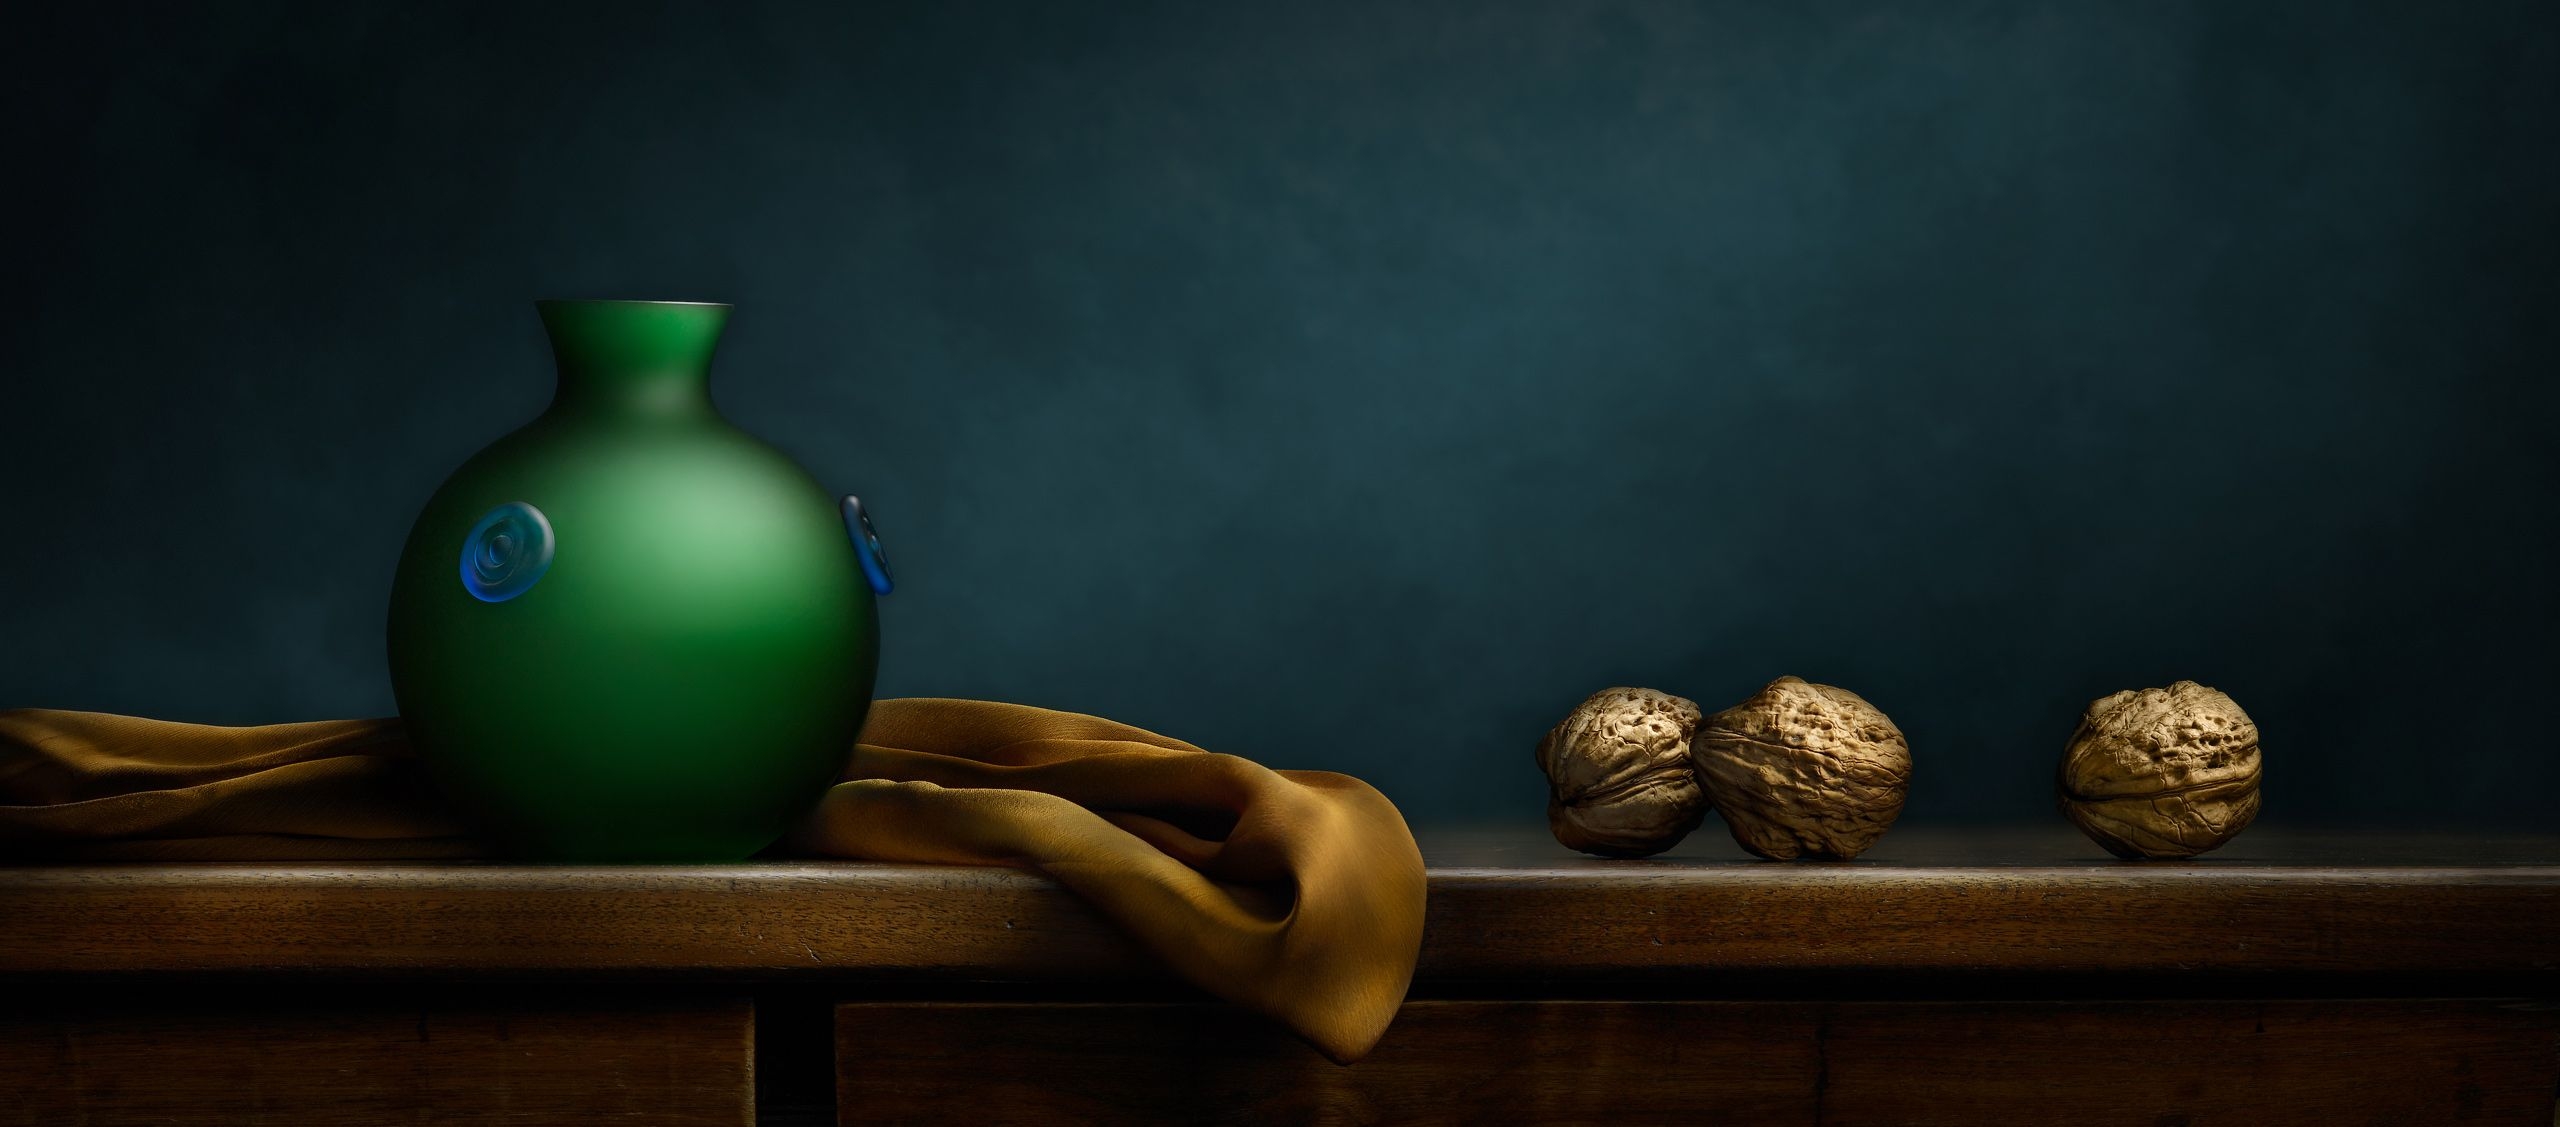 Still_Life_with_Green_Vase_and_Walnuts_LB.jpg